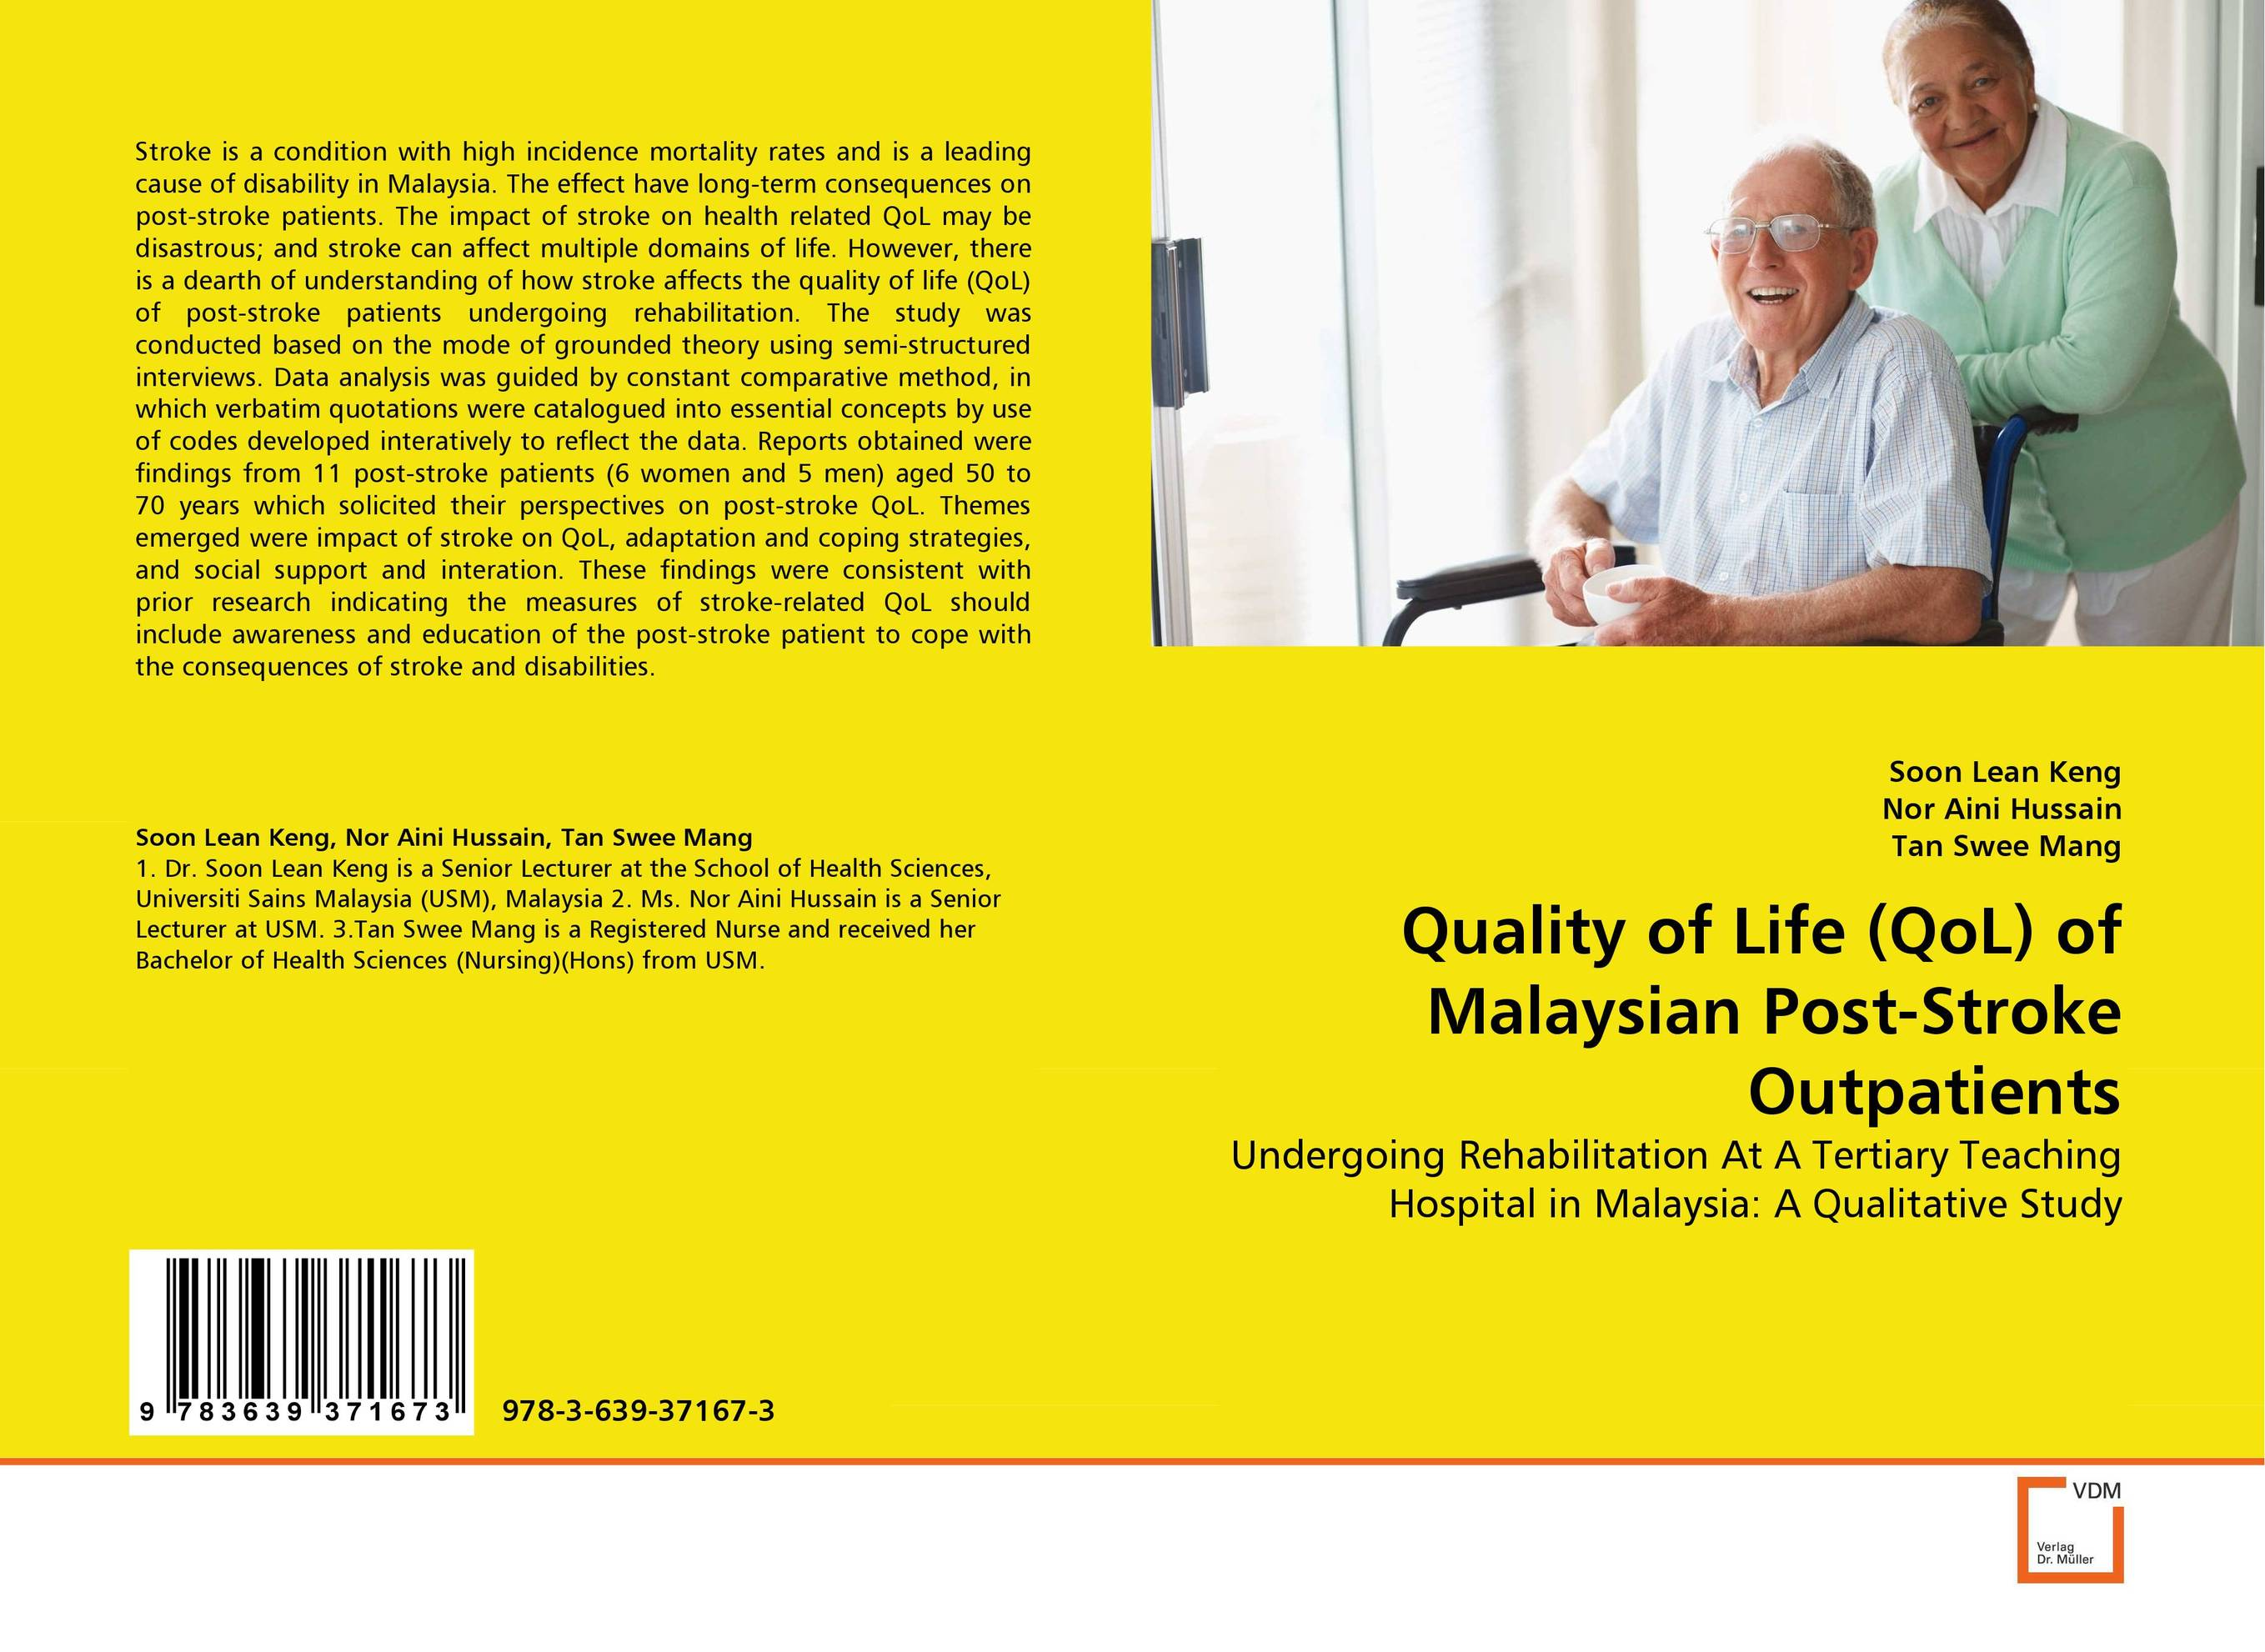 Quality of Life (QoL) of Malaysian Post-Stroke Outpatients три кота сны на заказ